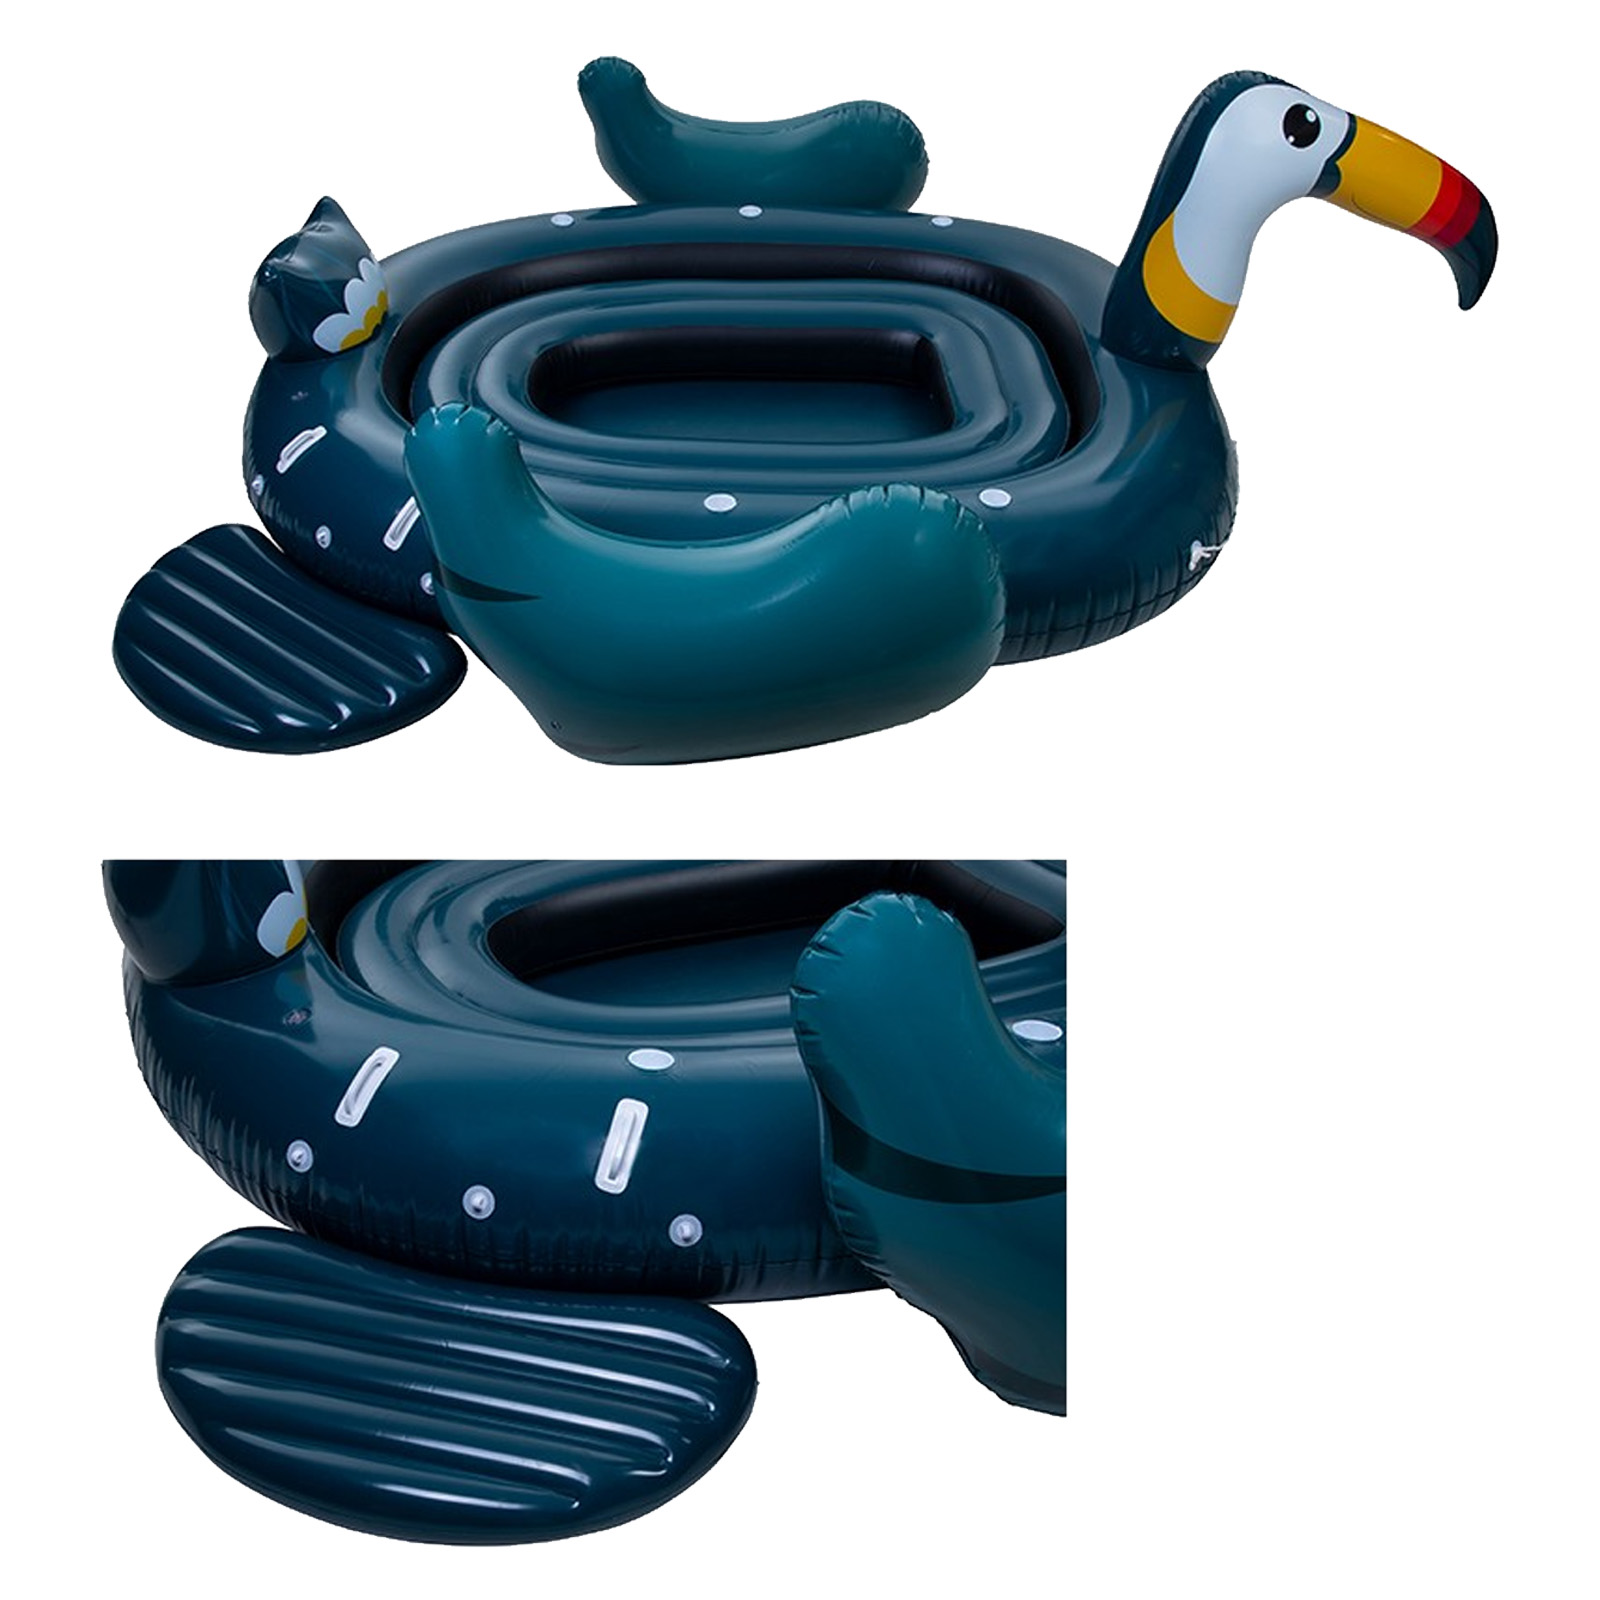 Indexbild 13 - Pure4Fun 6 Person Giant Inflatable Party Blow Up Dinghy Boat Pool Beach Lilo